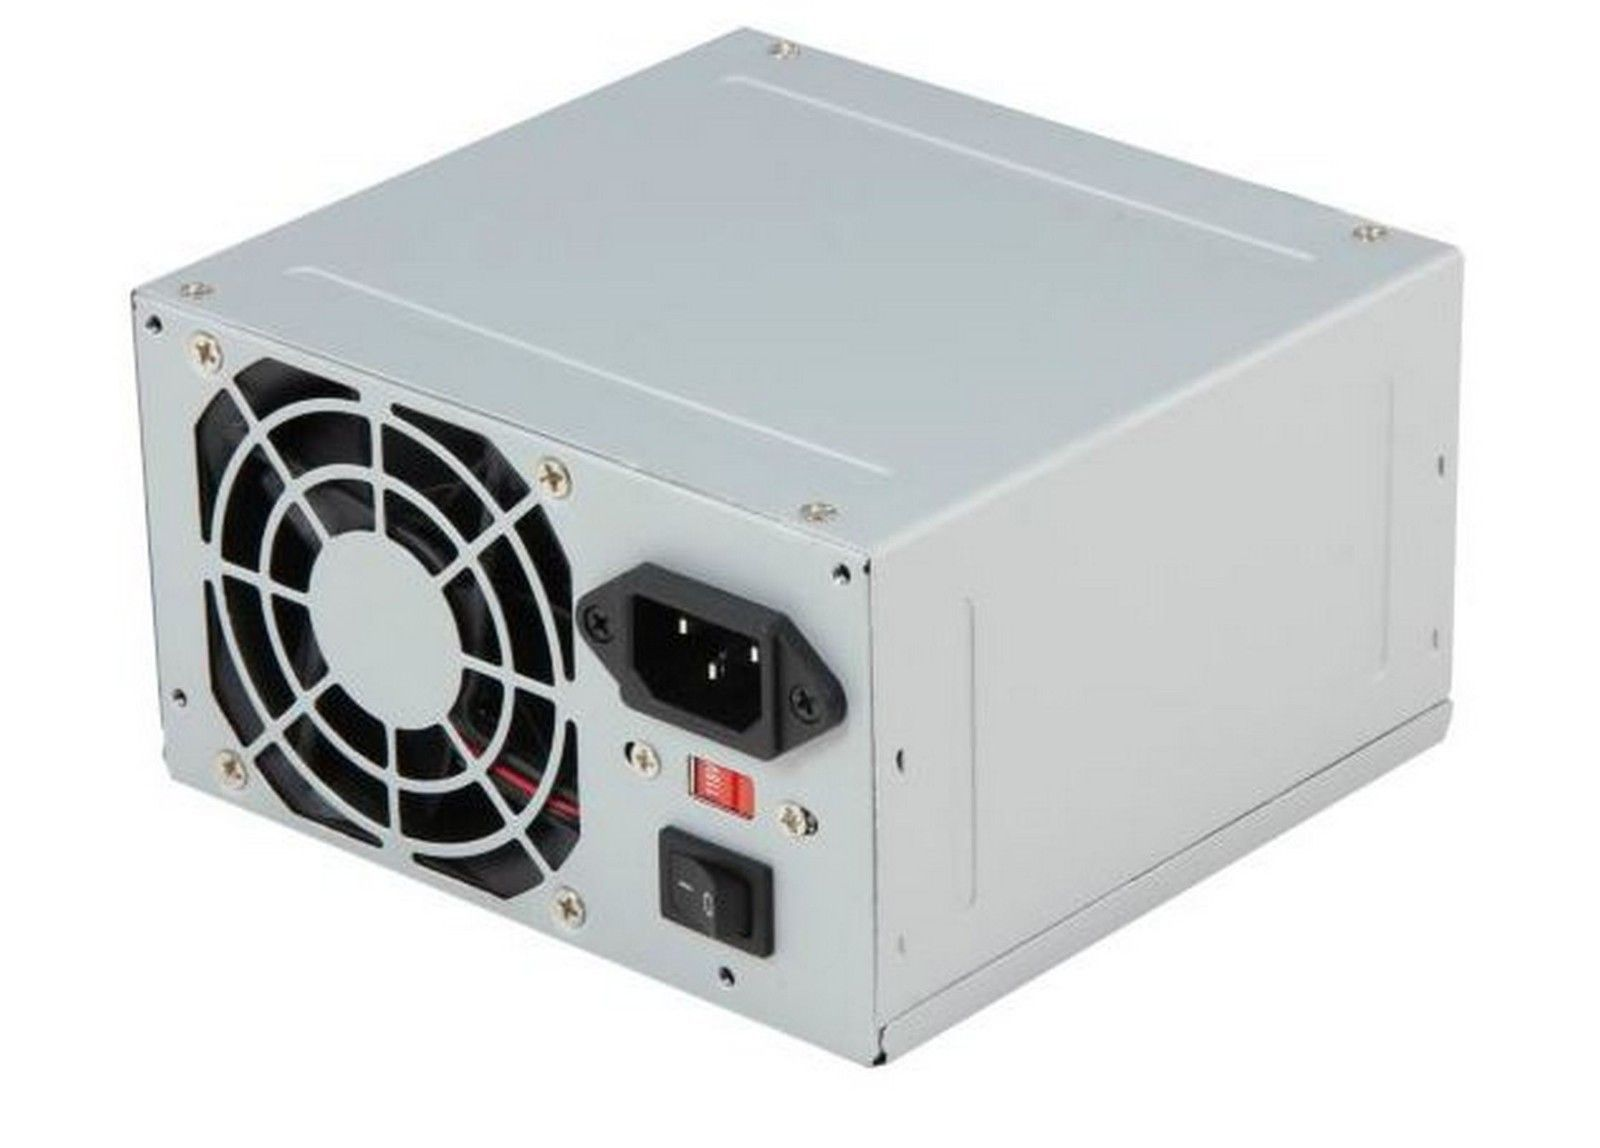 New PC Power Supply Upgrade for Gateway S and 31 similar items